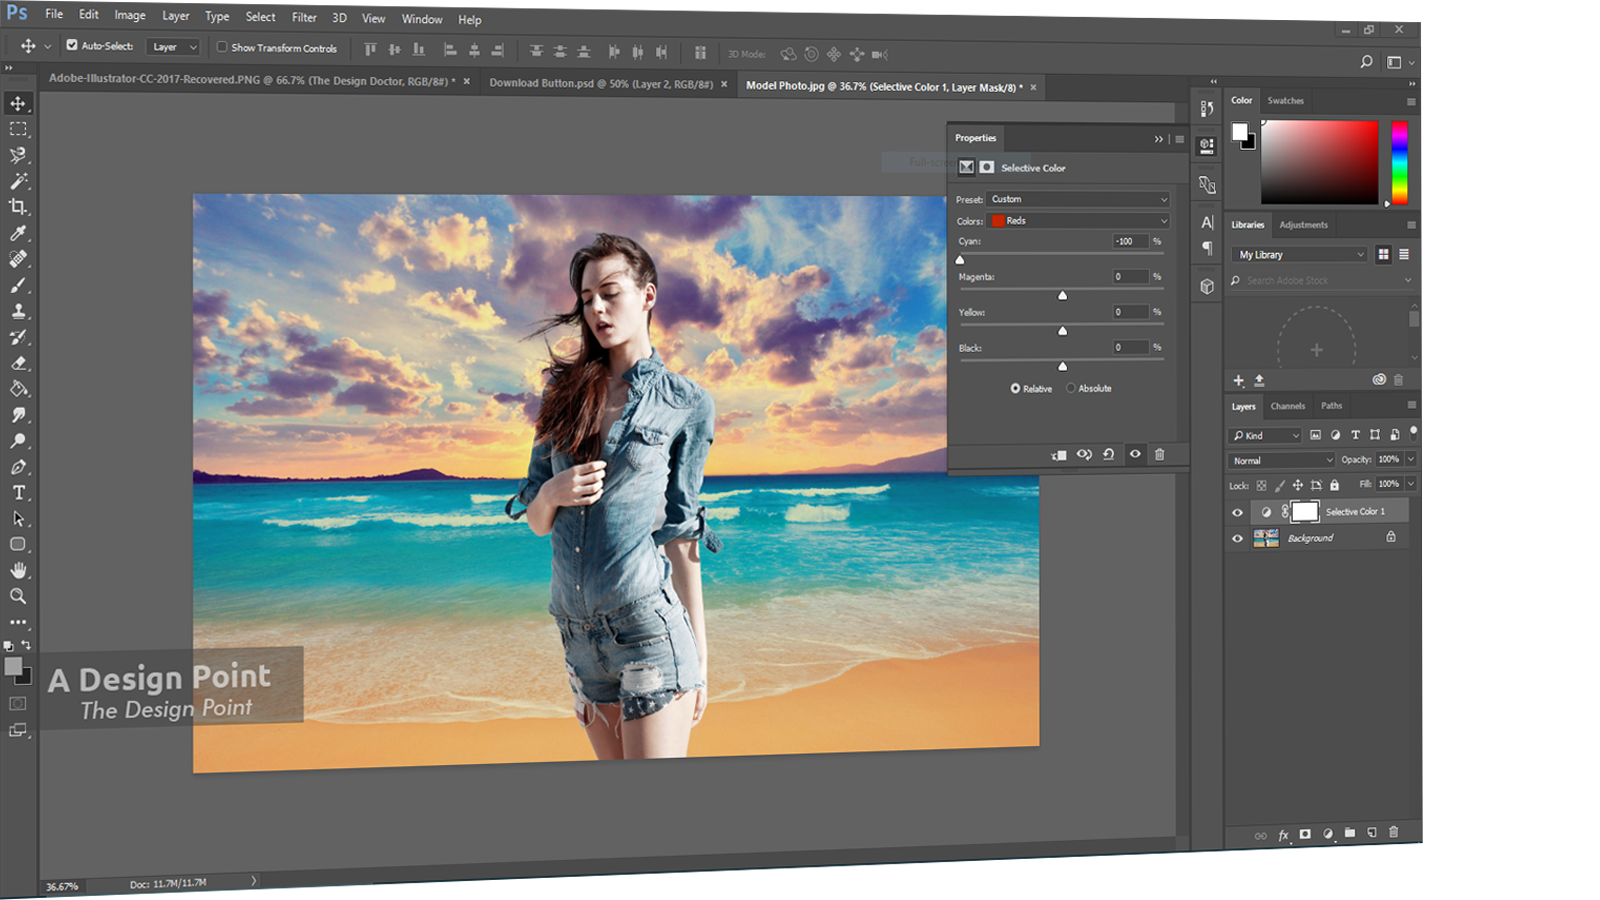 adobe photoshop cc download free full version for windows 7